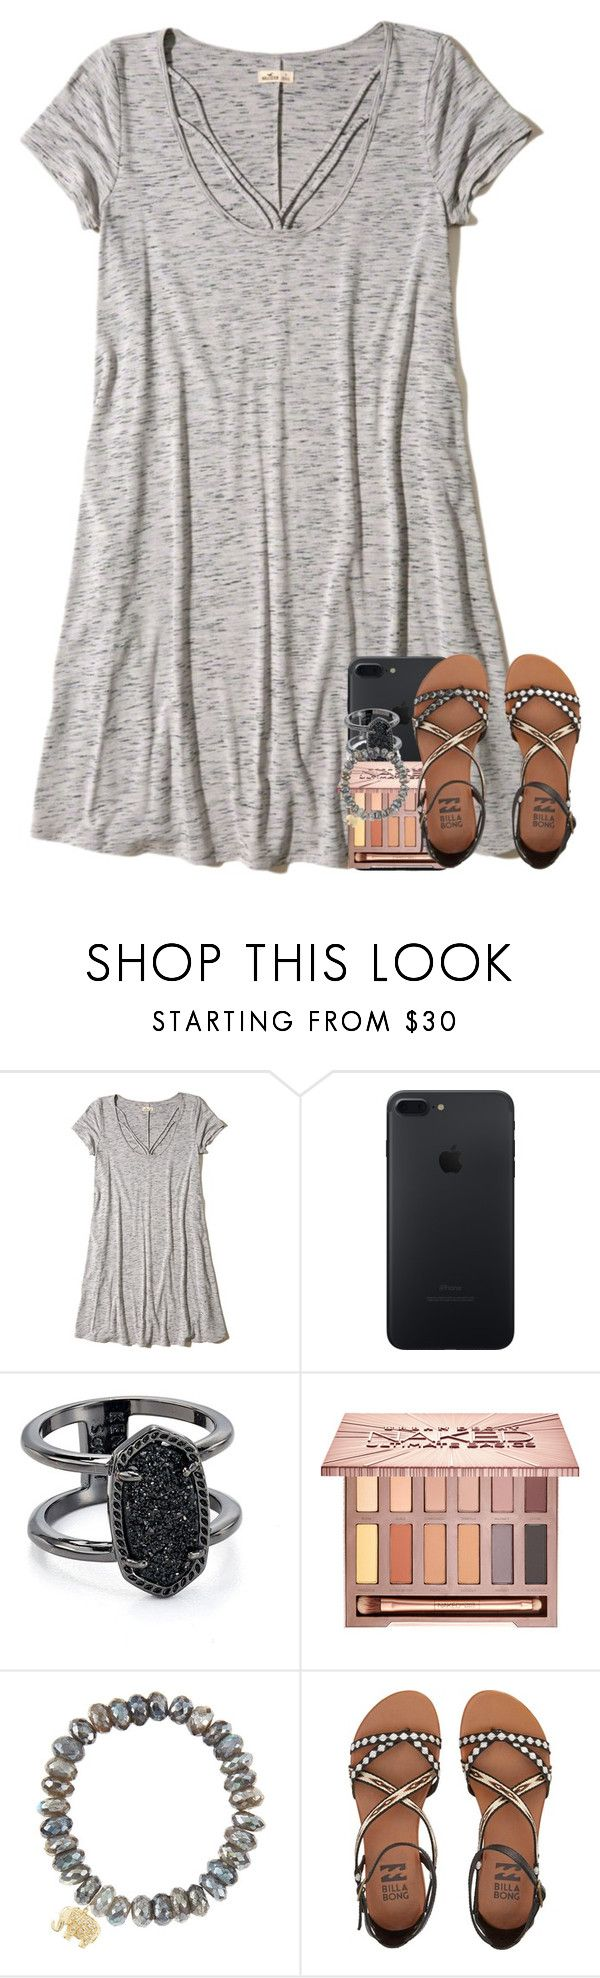 """you know those rumors get to flyin' in a town this size"" by preppymilitarybrat ❤ liked on Polyvore featuring Hollister Co., Kendra Scott, Urban Decay, Sydney Evan and Billabong"